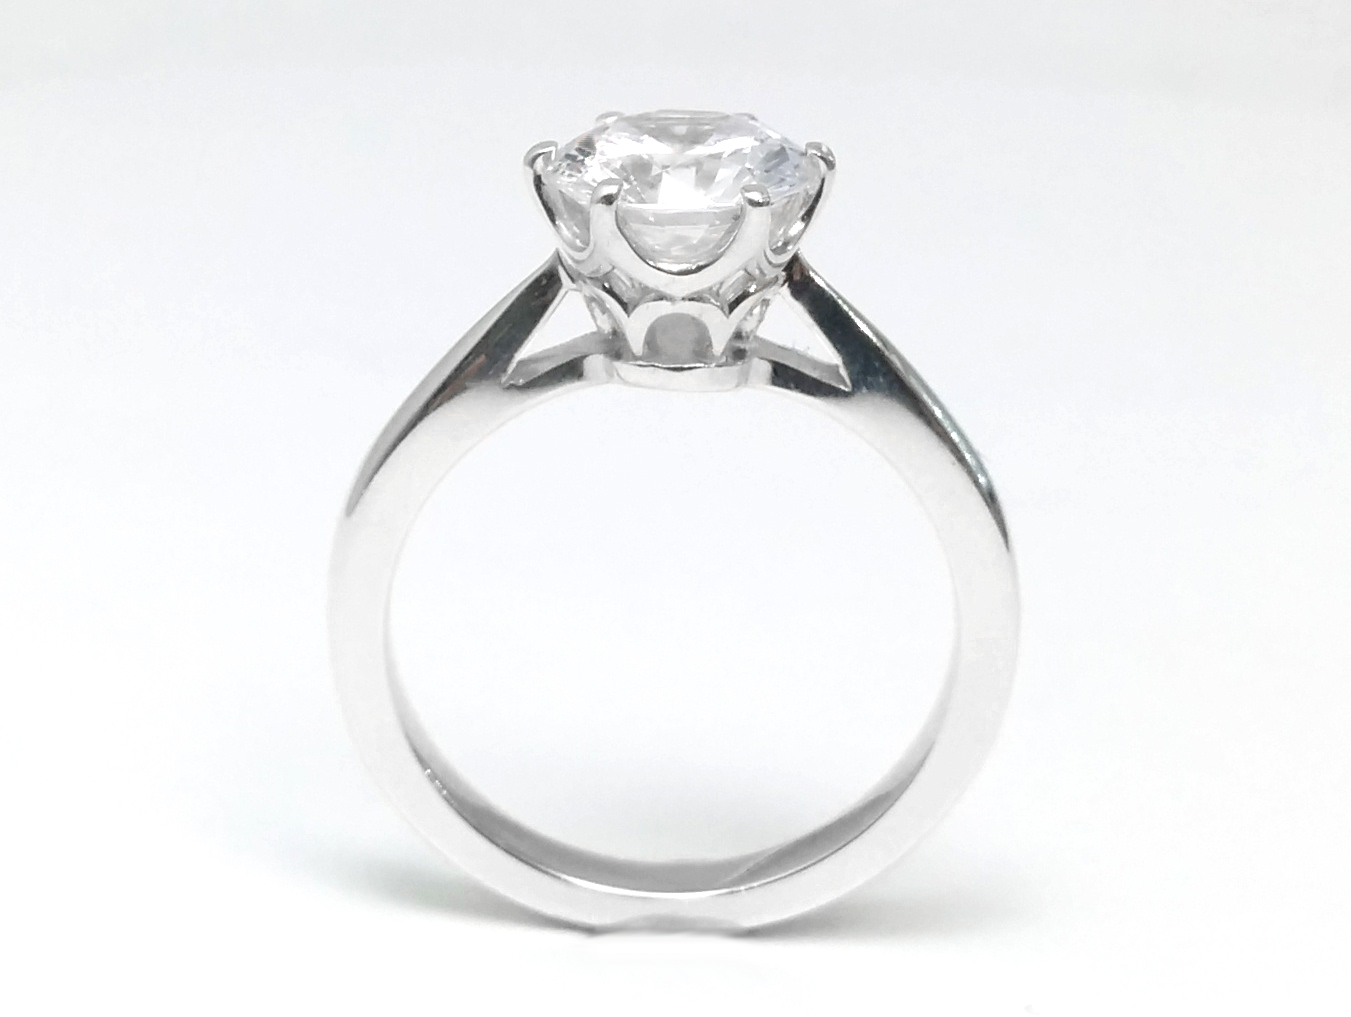 Floral Petal Solitaire Crown Engagement Ring In 14k  White Gold